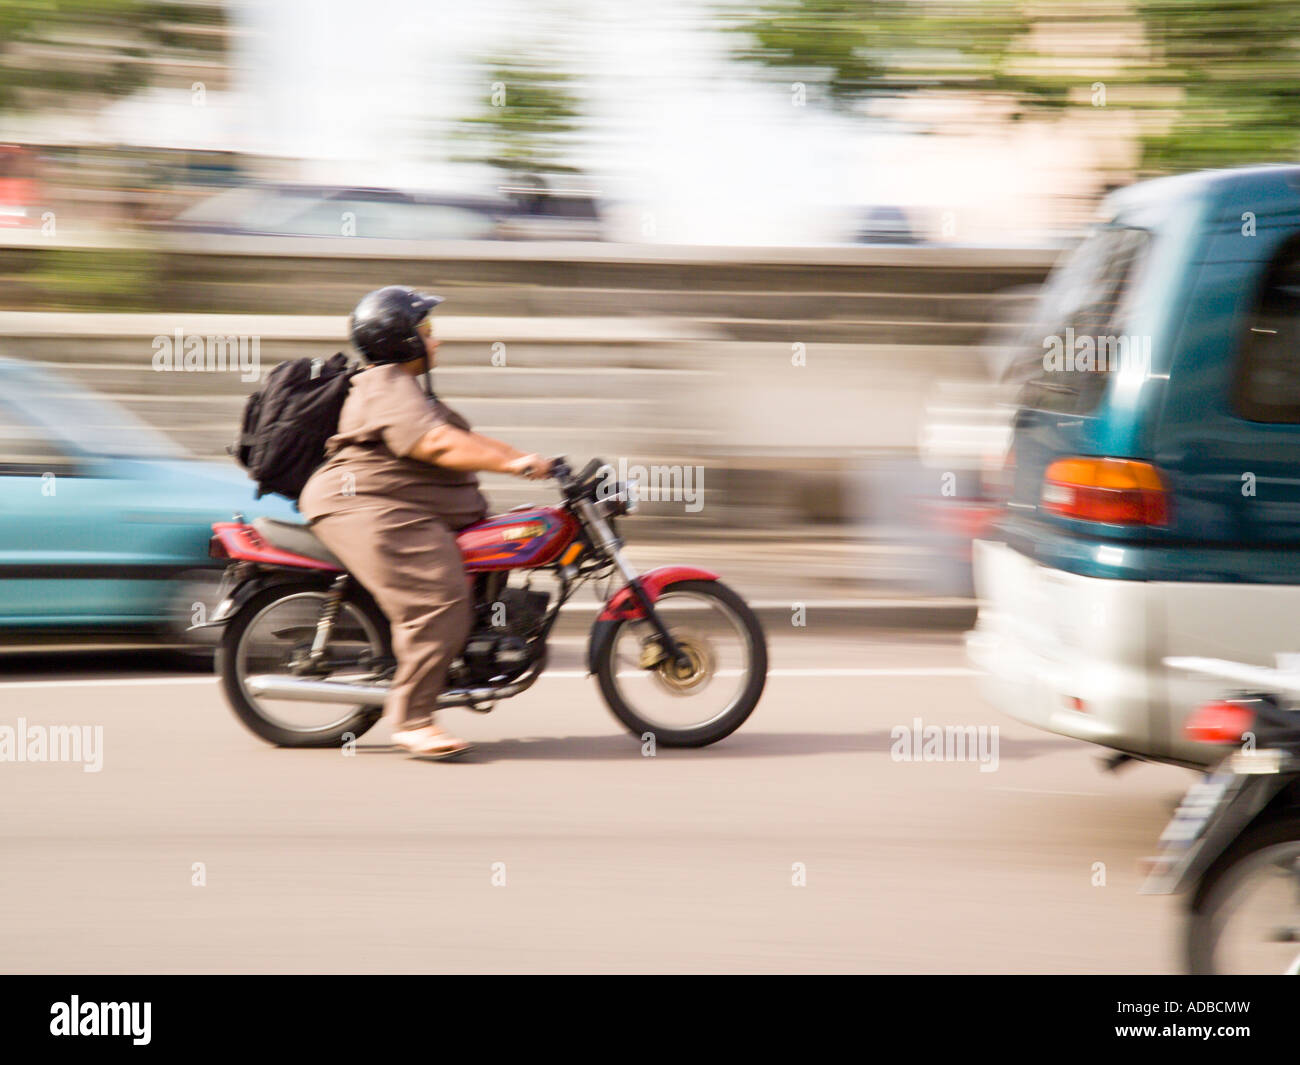 Fat naked girl motorcycle picture 819